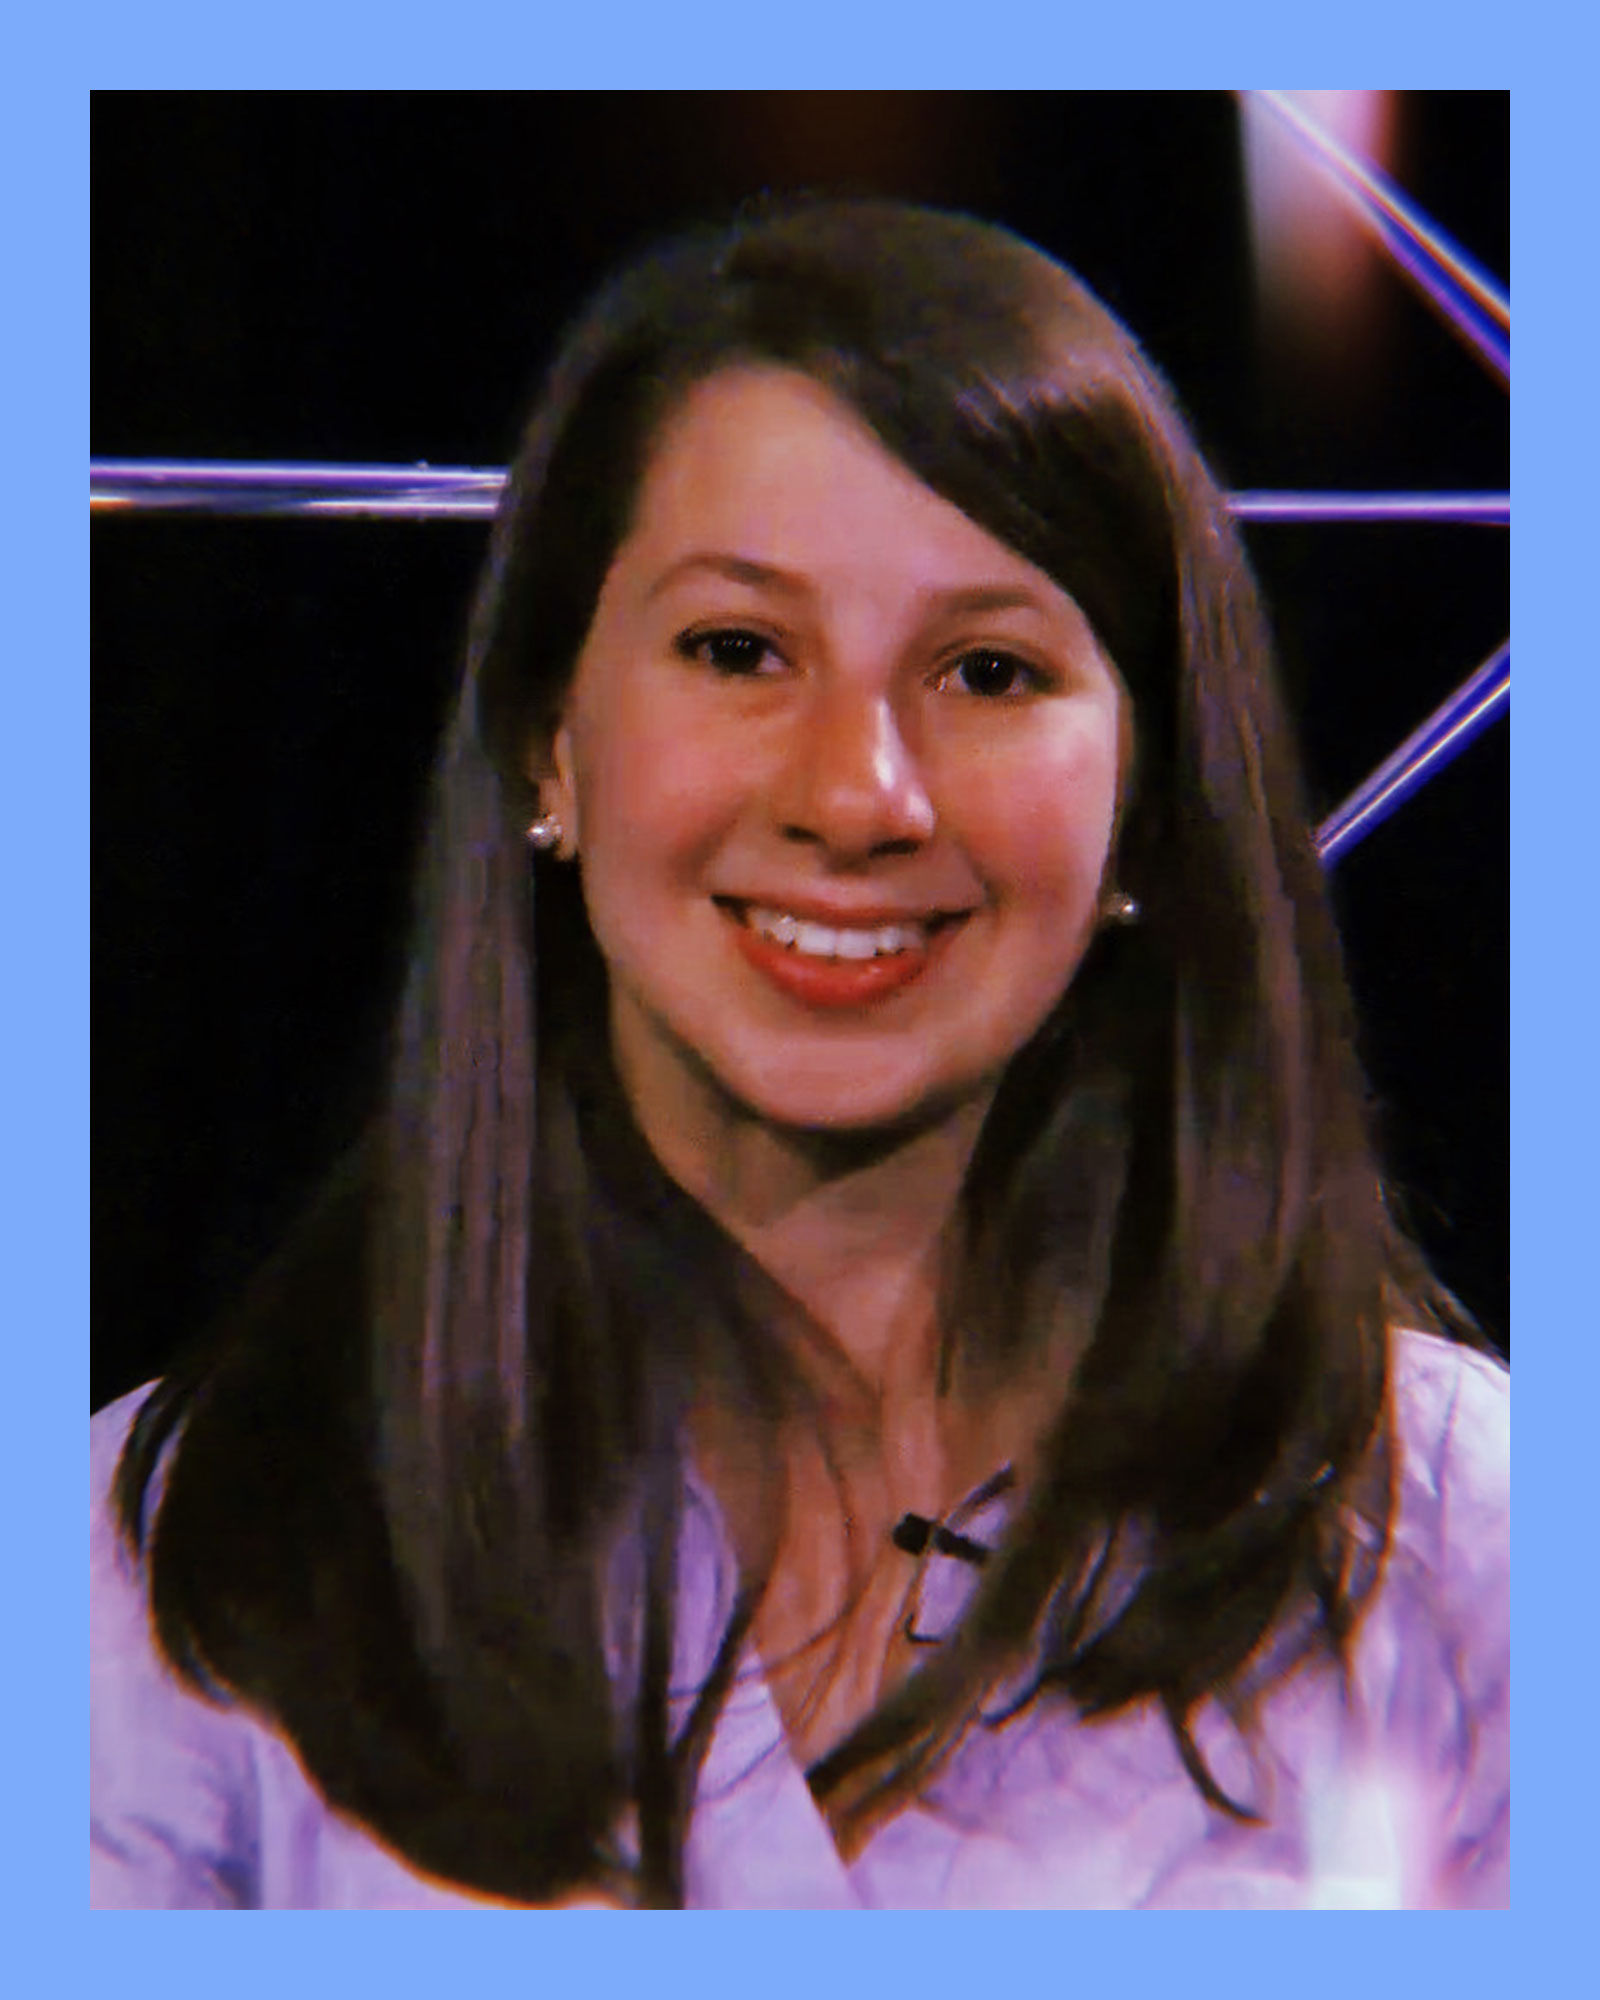 closeup photo of grad student, Katie Bouman, a young white woman with long brown straight hair, wearing a purple top and smiling